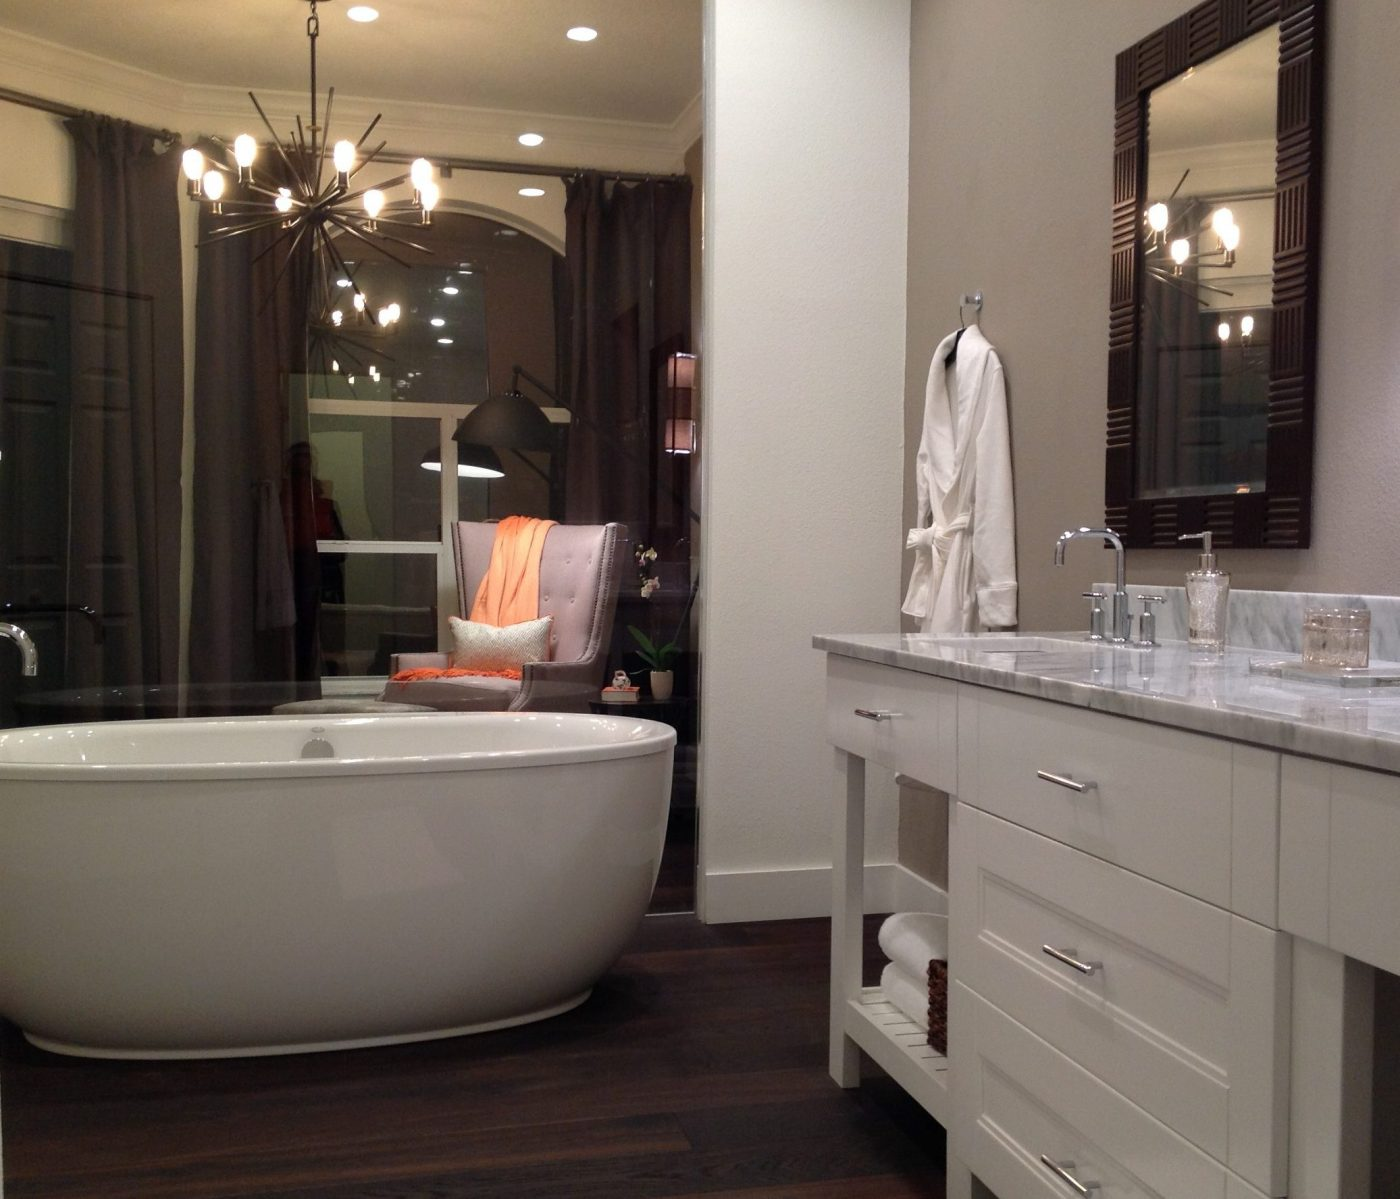 Loving the glass wall! The bath feels twice as big and so luxurious!